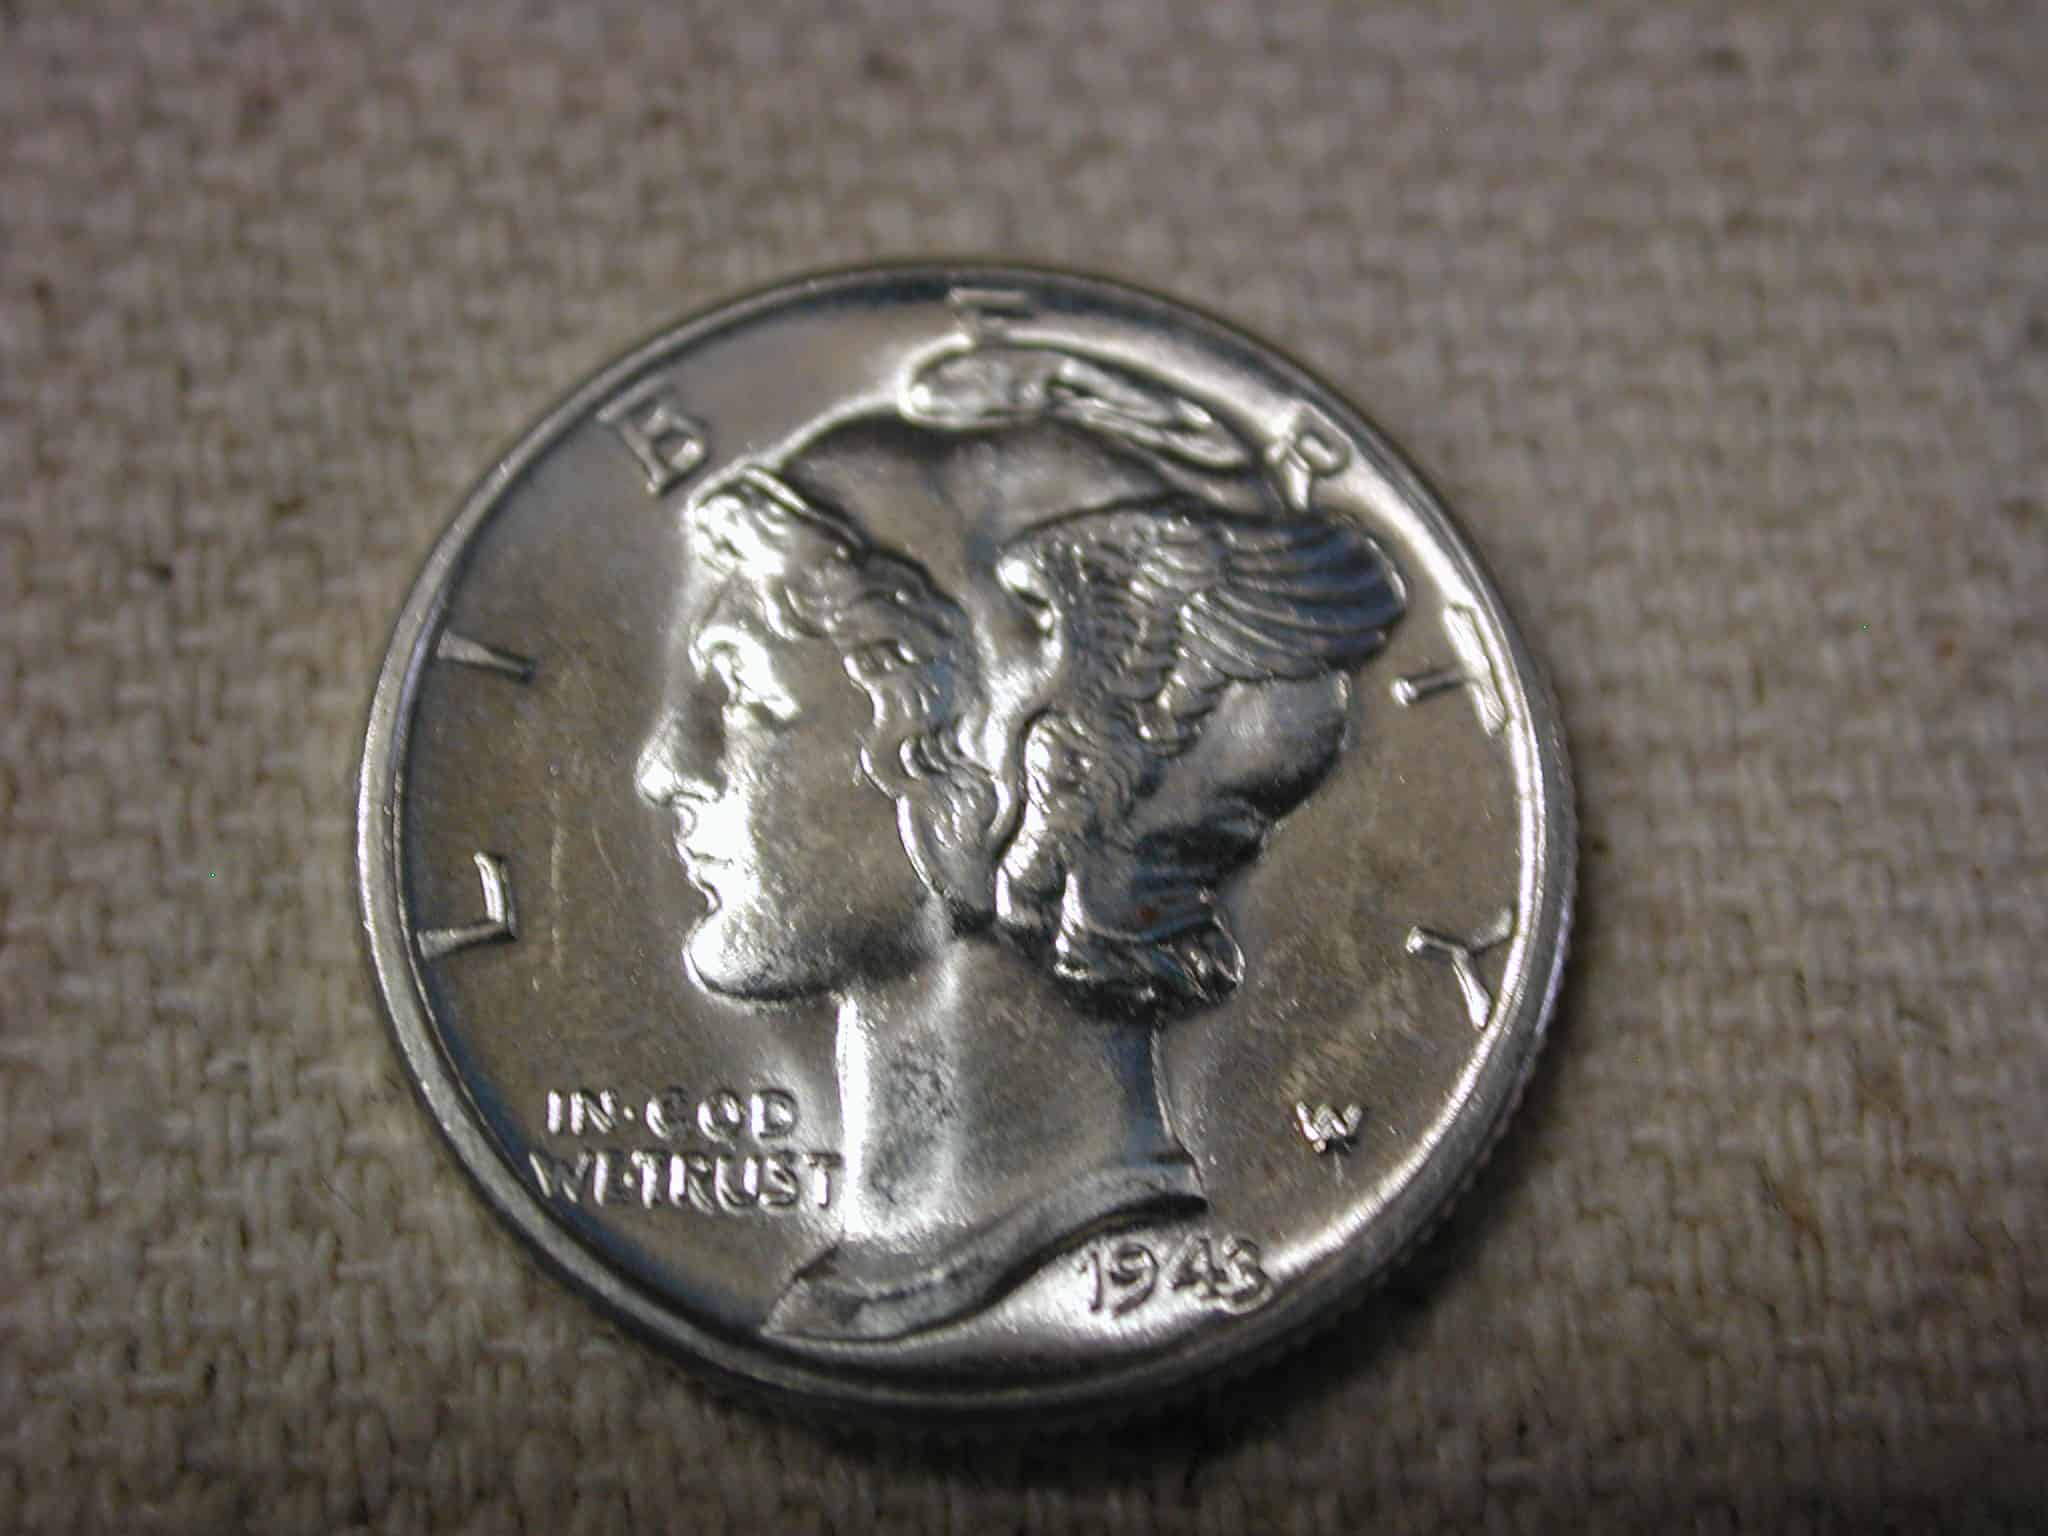 Obverse (head) features